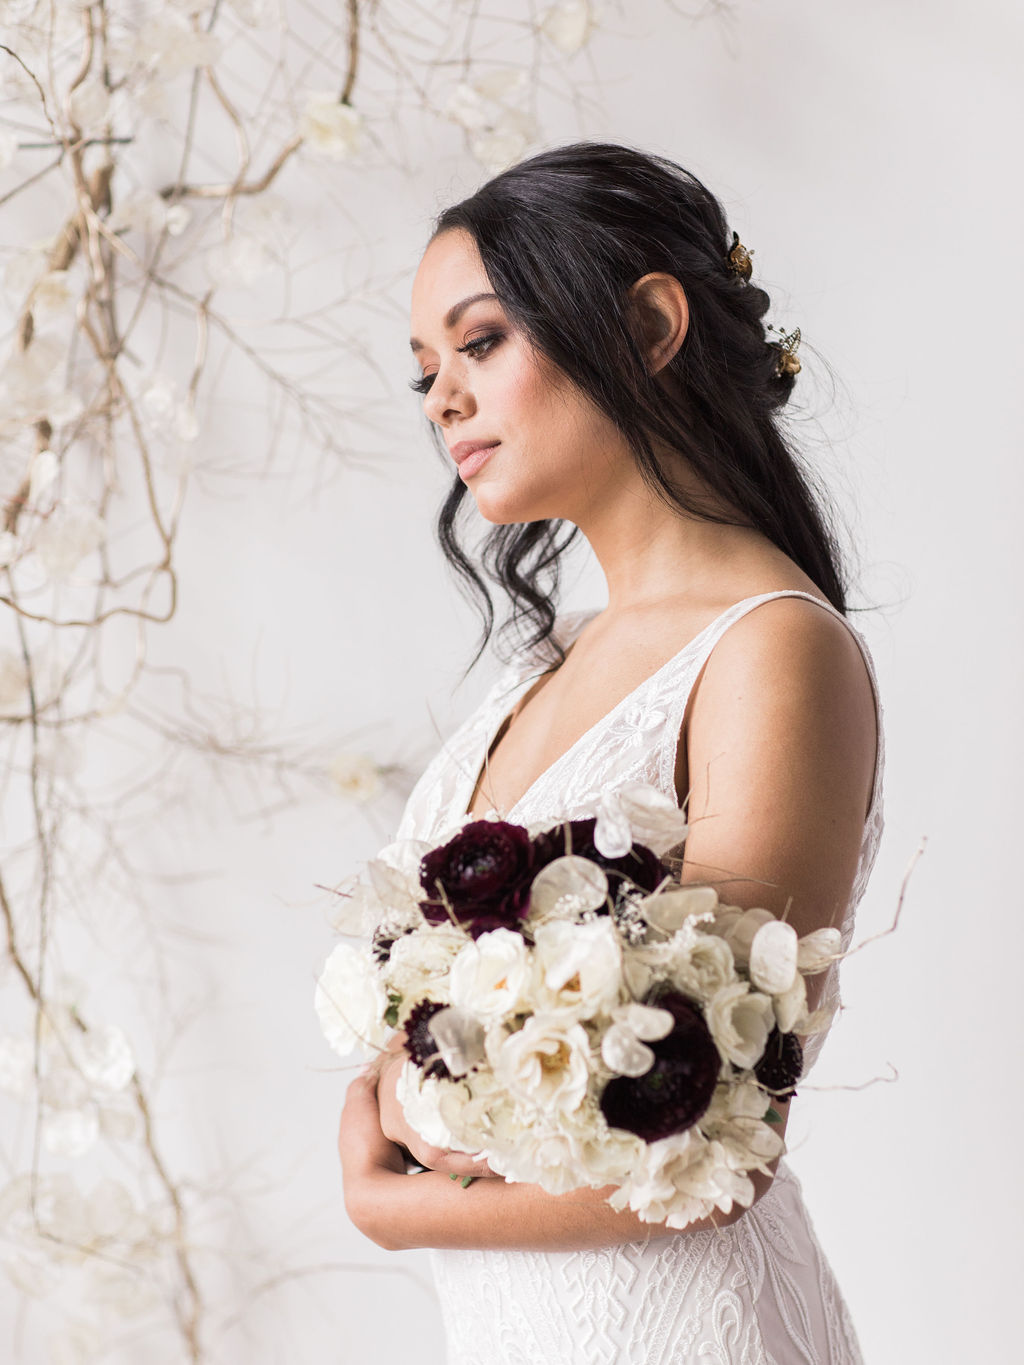 Dark hair bride with floral bouquet wedding spokane